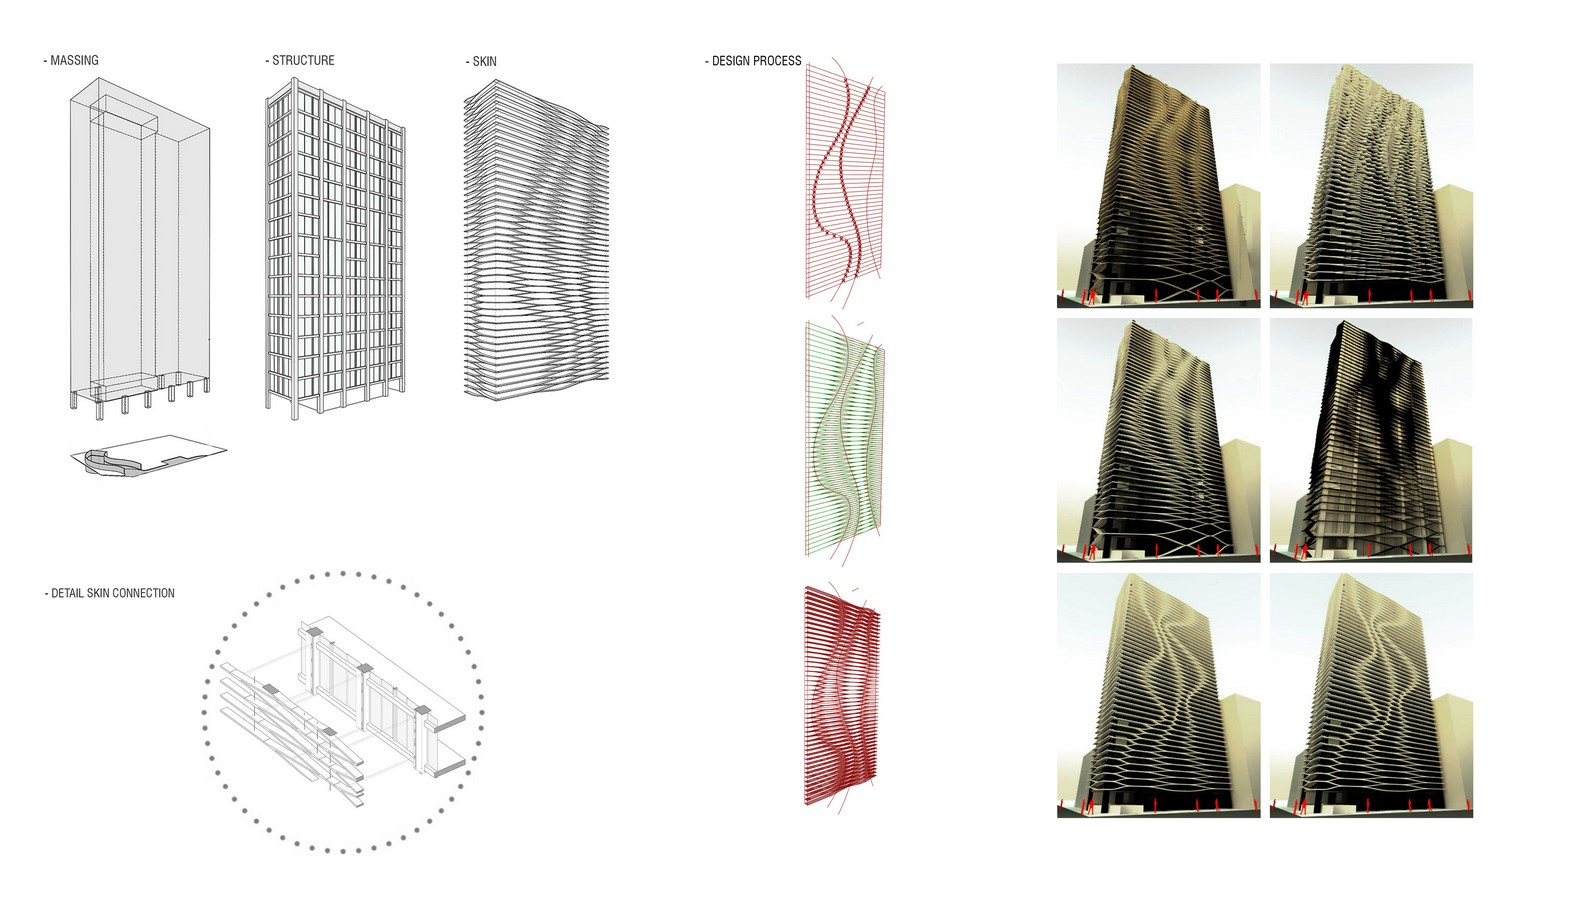 The WAVE by SOMA architects - Contemporary solution to Ingenious Problem - Sheet4